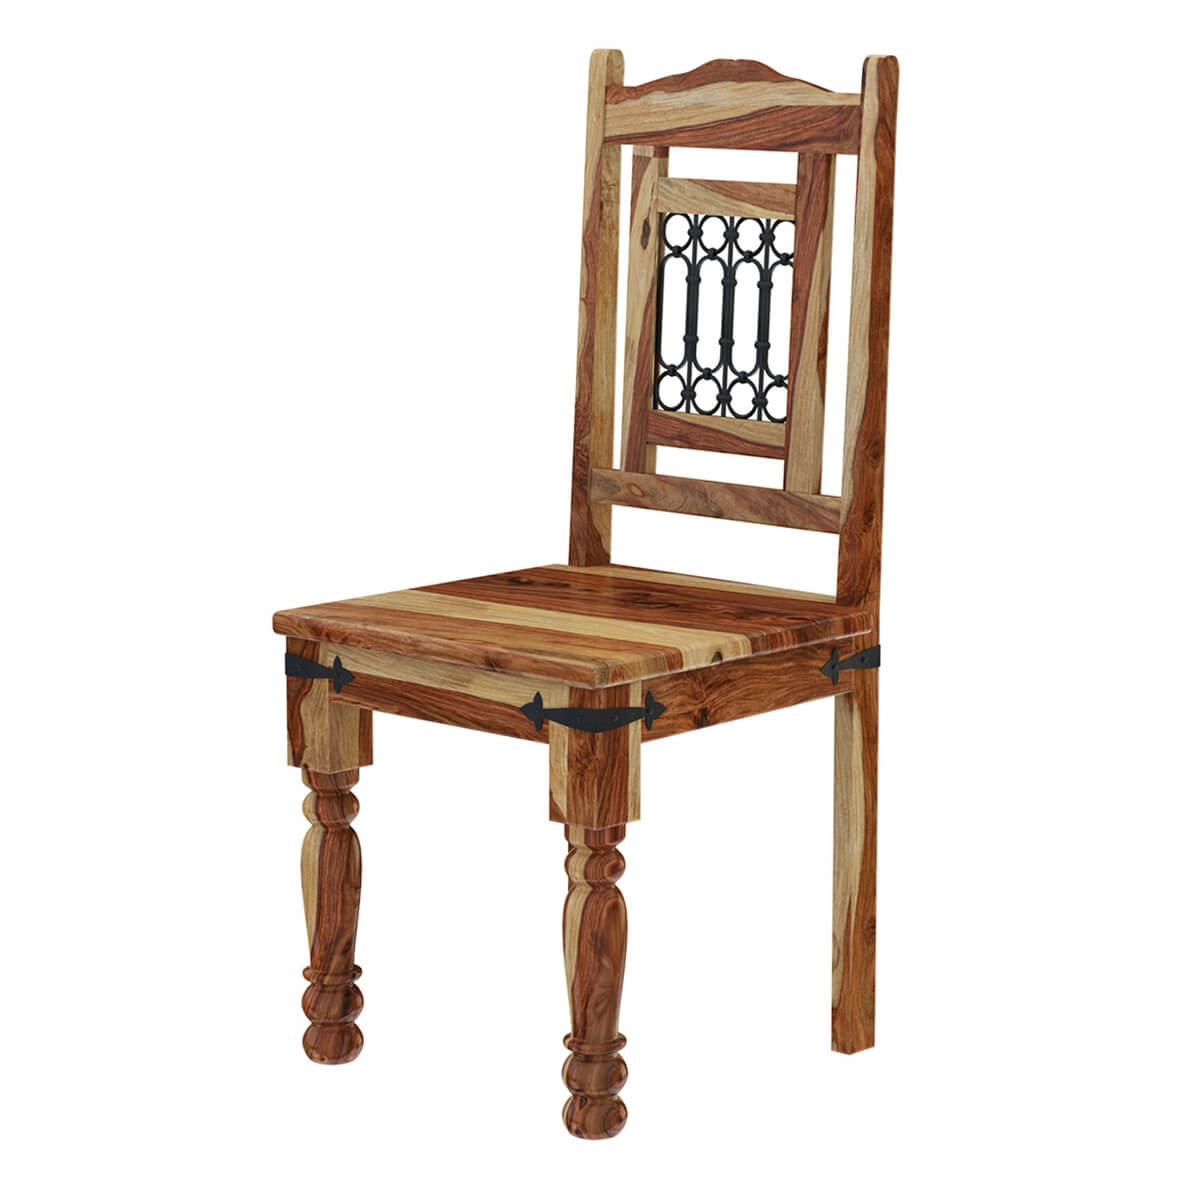 Rustic Dining Chairs Peoria Solid Wood And Wrought Iron Rustic Kitchen Dining Chair